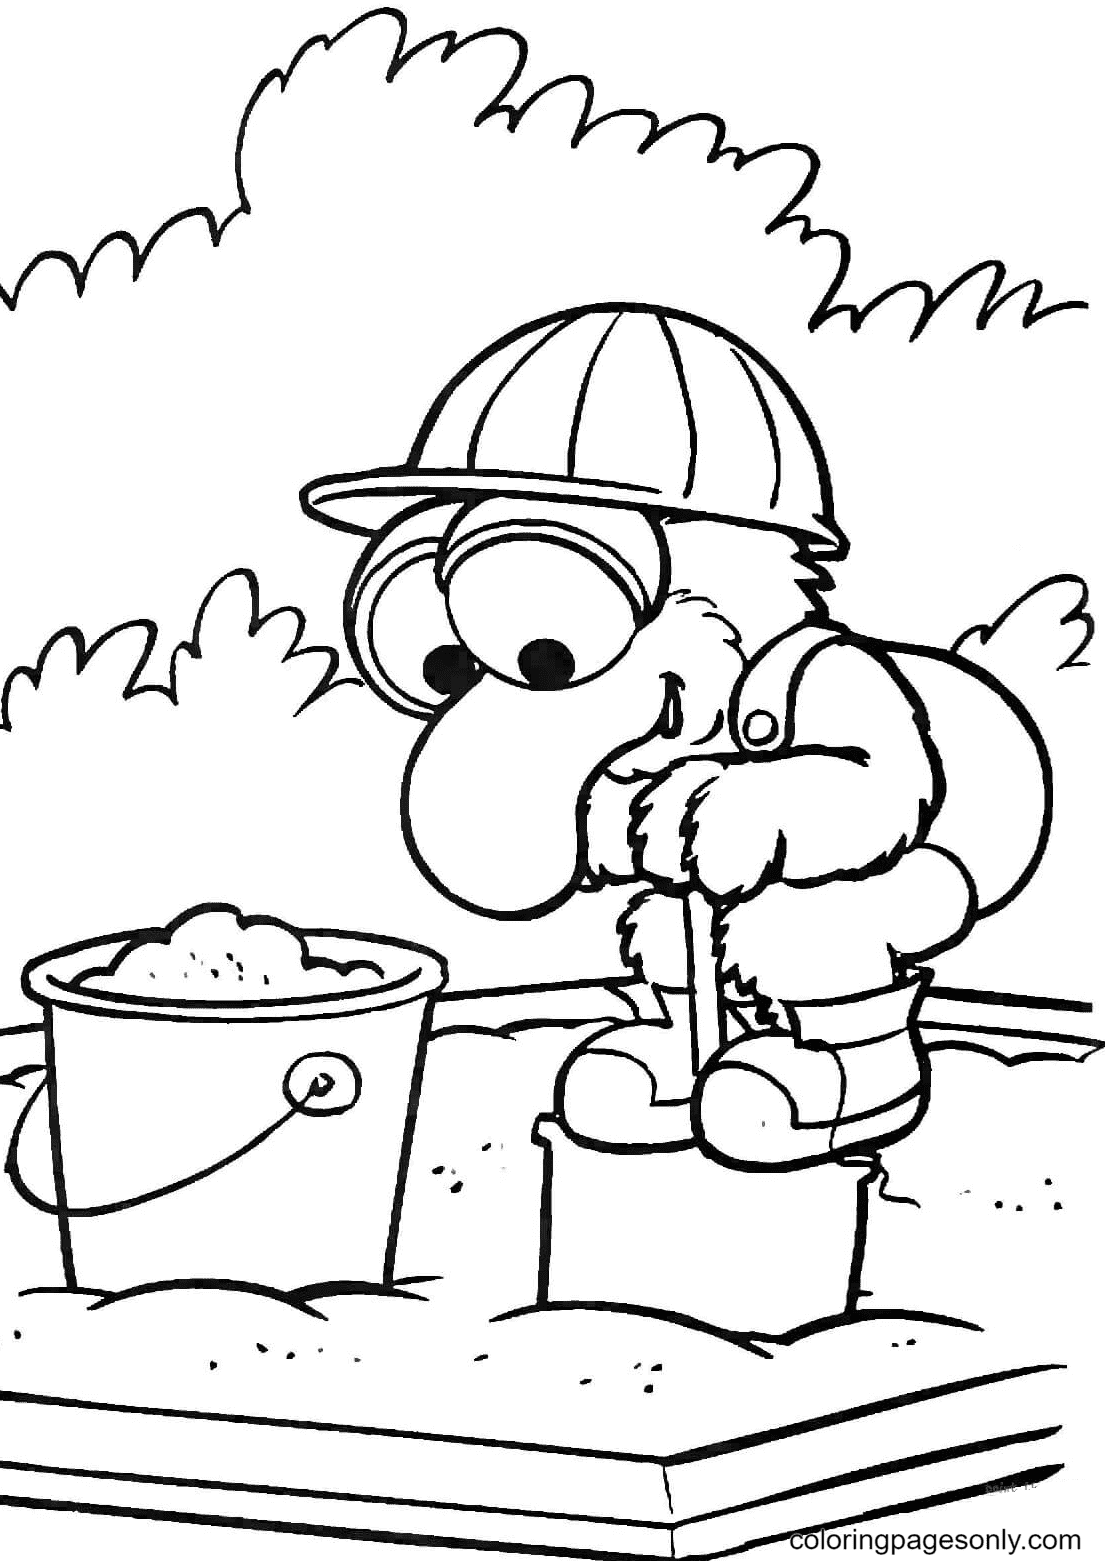 Gonzo Is Playing on a Sandbox Coloring Page